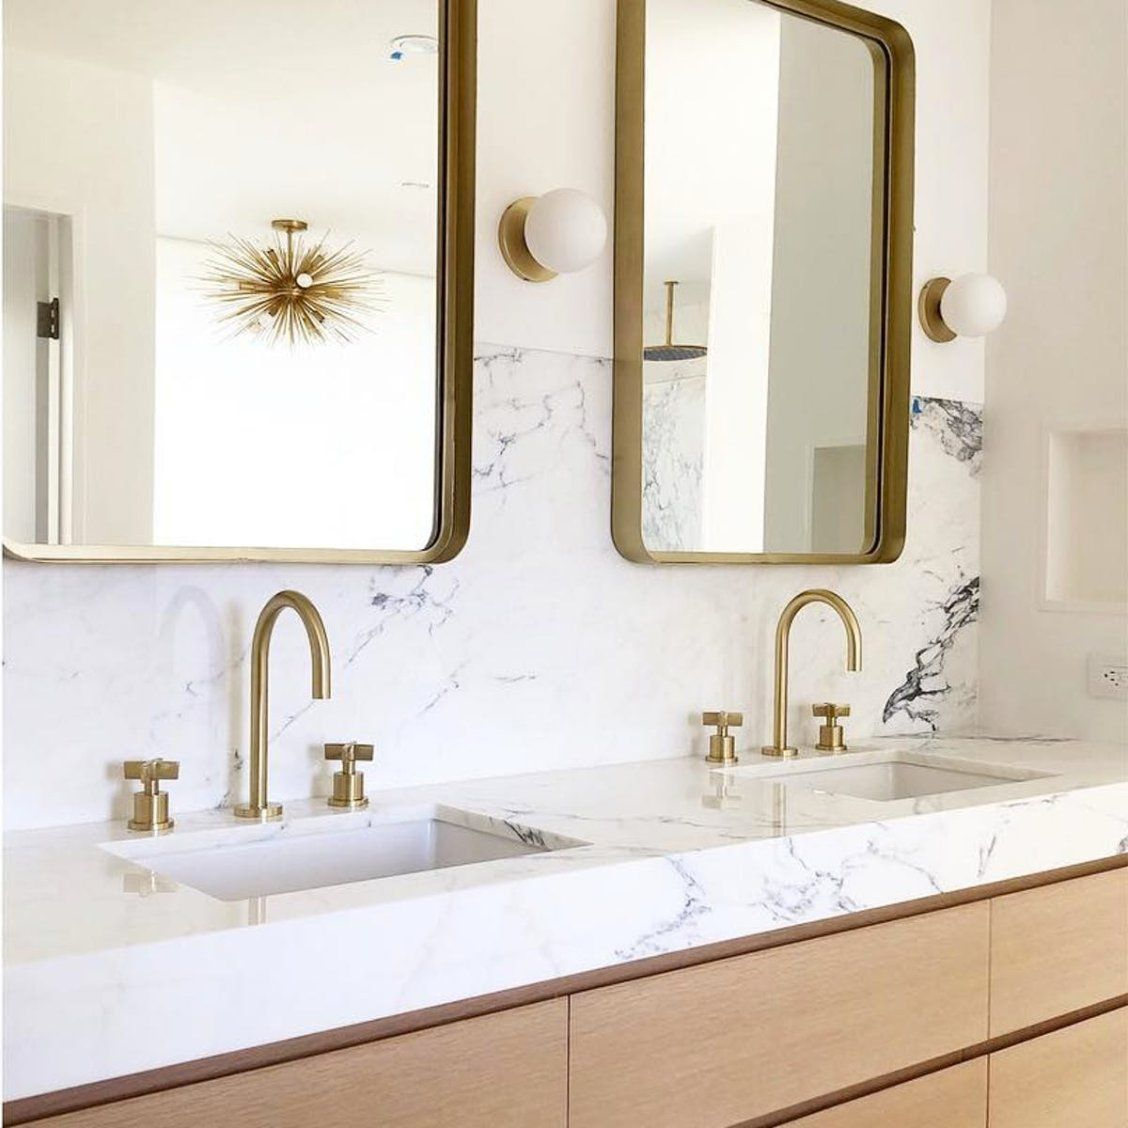 The Result Is Legen Wait For It Dary Neill Patrick Harris Teamed Up With Houzz To Give His Brother A Bathroom Decor Luxury Bathroom Design Small Bathroom